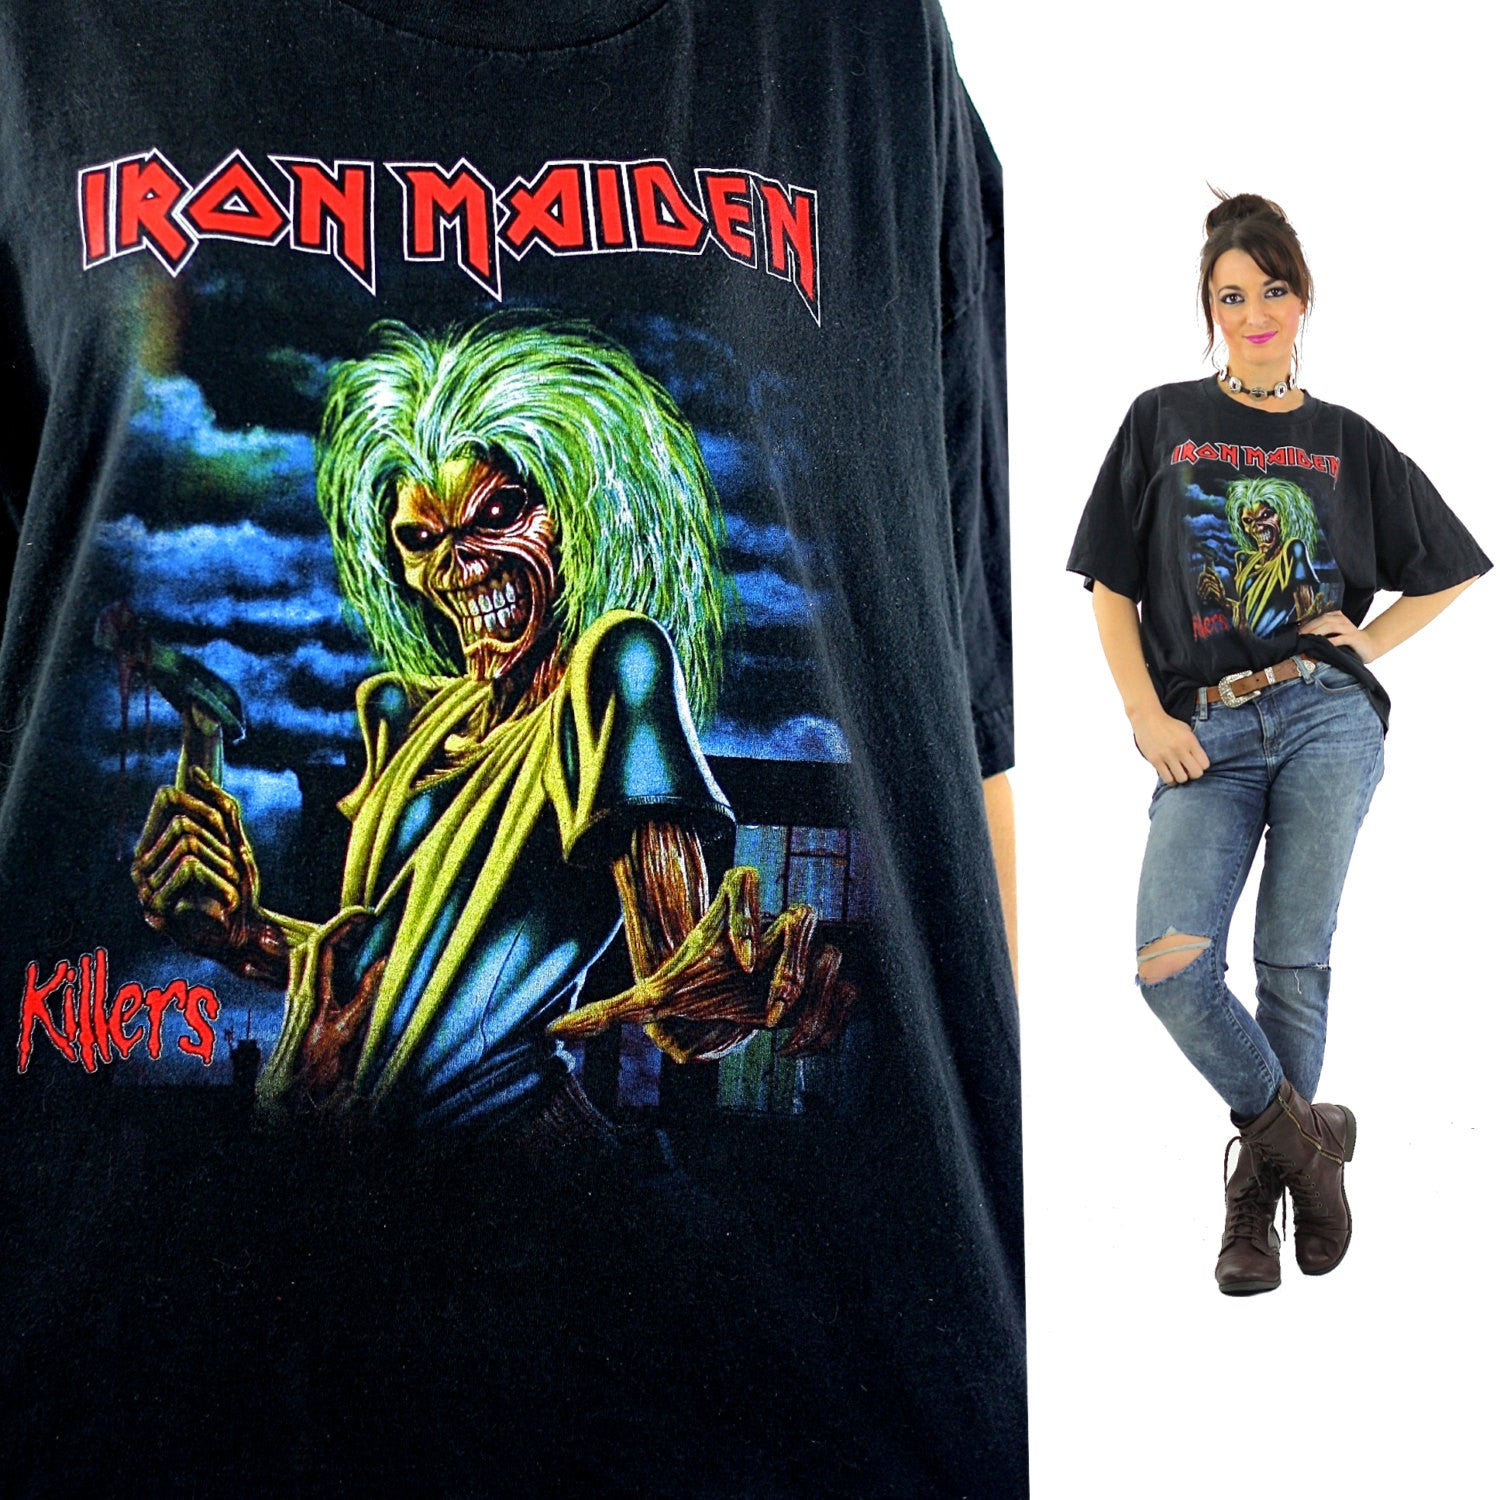 Iron Maiden Killers Tour tshirt concert tee Band shirt rock n roll graphic  black skull XL - shabbybabe